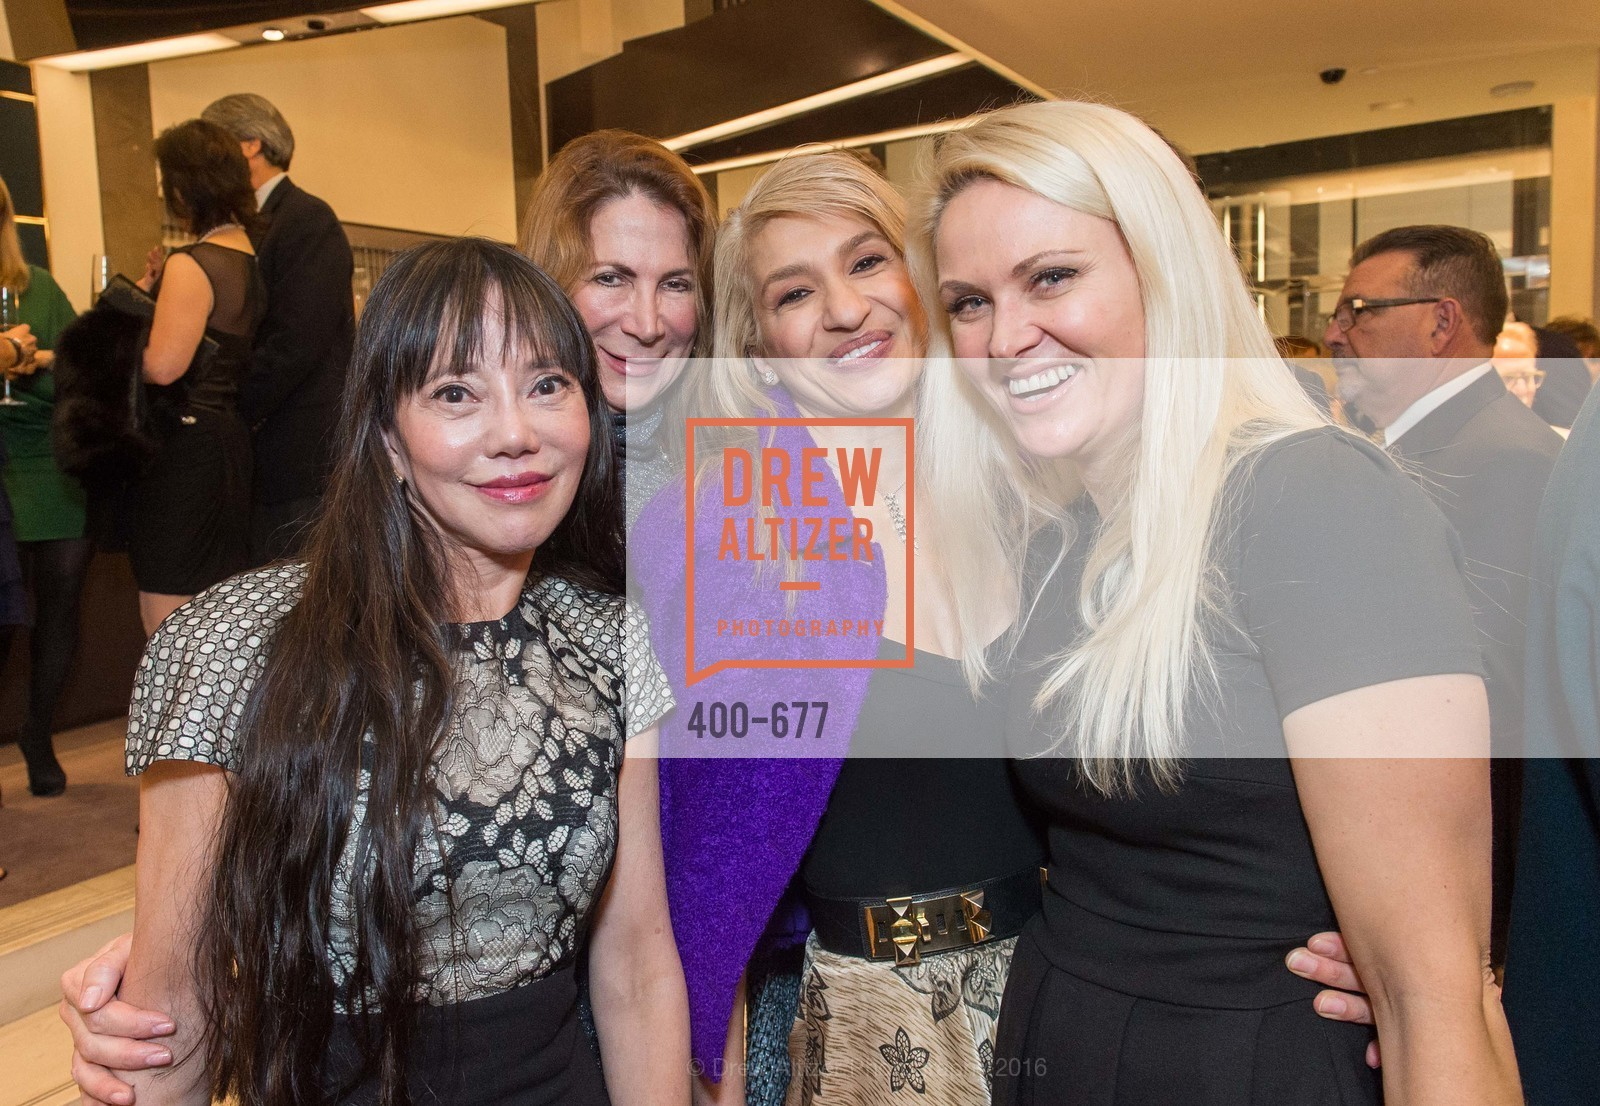 France Szeto, Patricia Ferrin Loucks, Navid Armstrong, Maria Ralph, Bulgari Hosts The 2016 Ballet Gala Patrons Party, Bulgari. 200 Stockton st, January 7th, 2016,Drew Altizer, Drew Altizer Photography, full-service event agency, private events, San Francisco photographer, photographer California